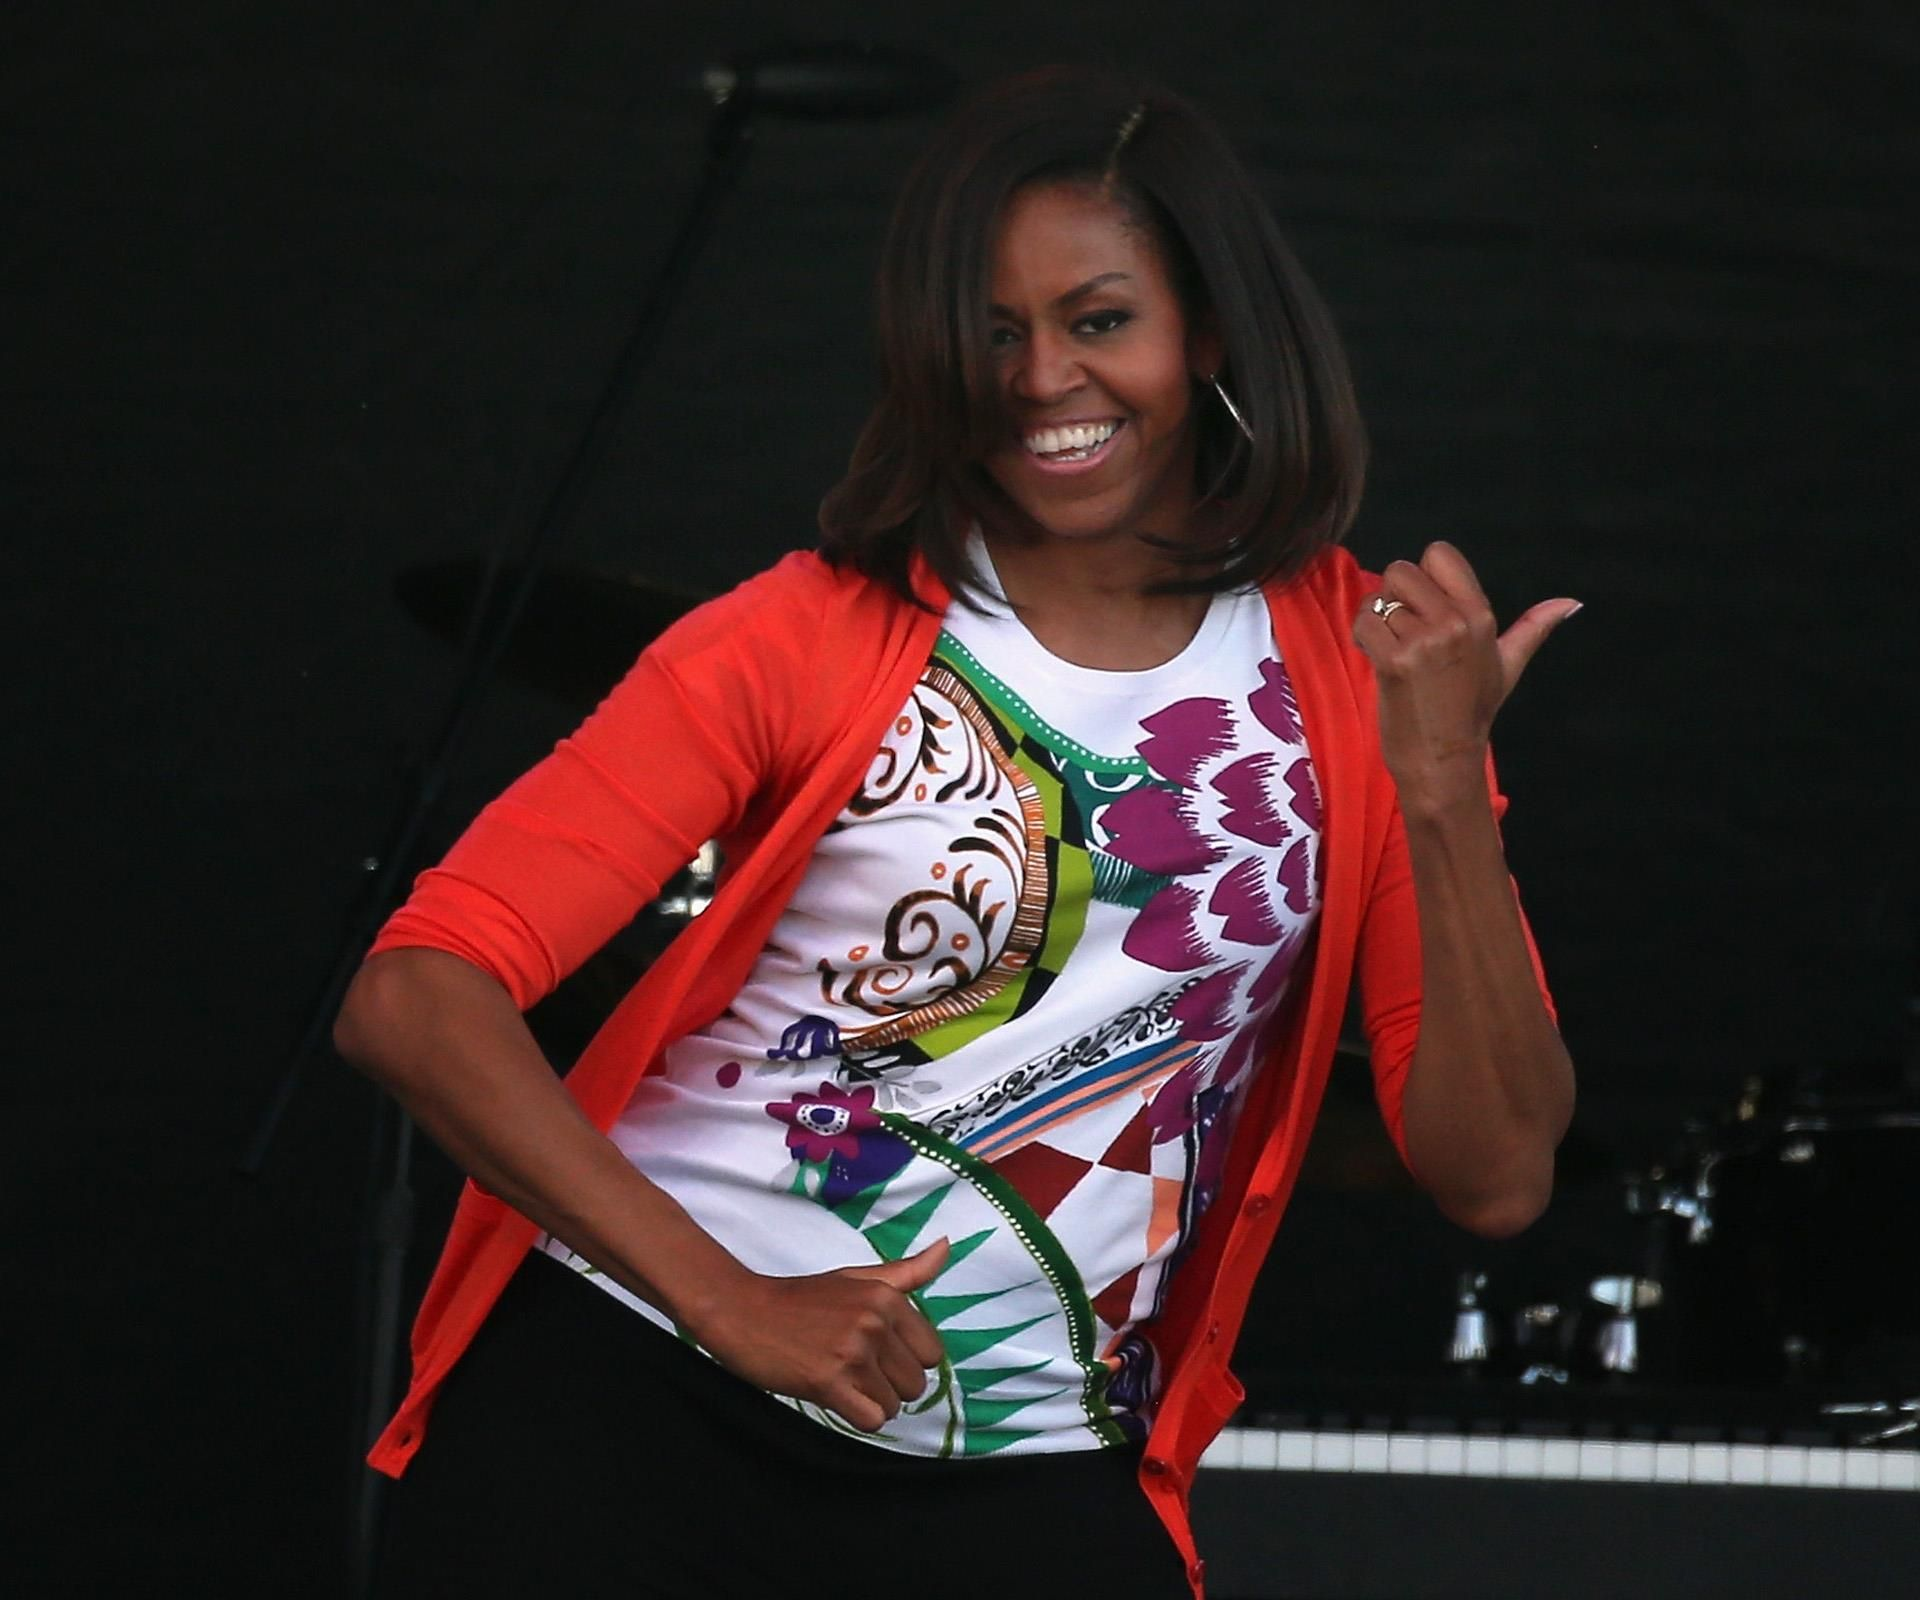 There's a new reason for Uptown Funk to be stuck in your head, as Michelle Obama made her on stage debut with the catchy tune and a whole heap of backup dancers on Monday.